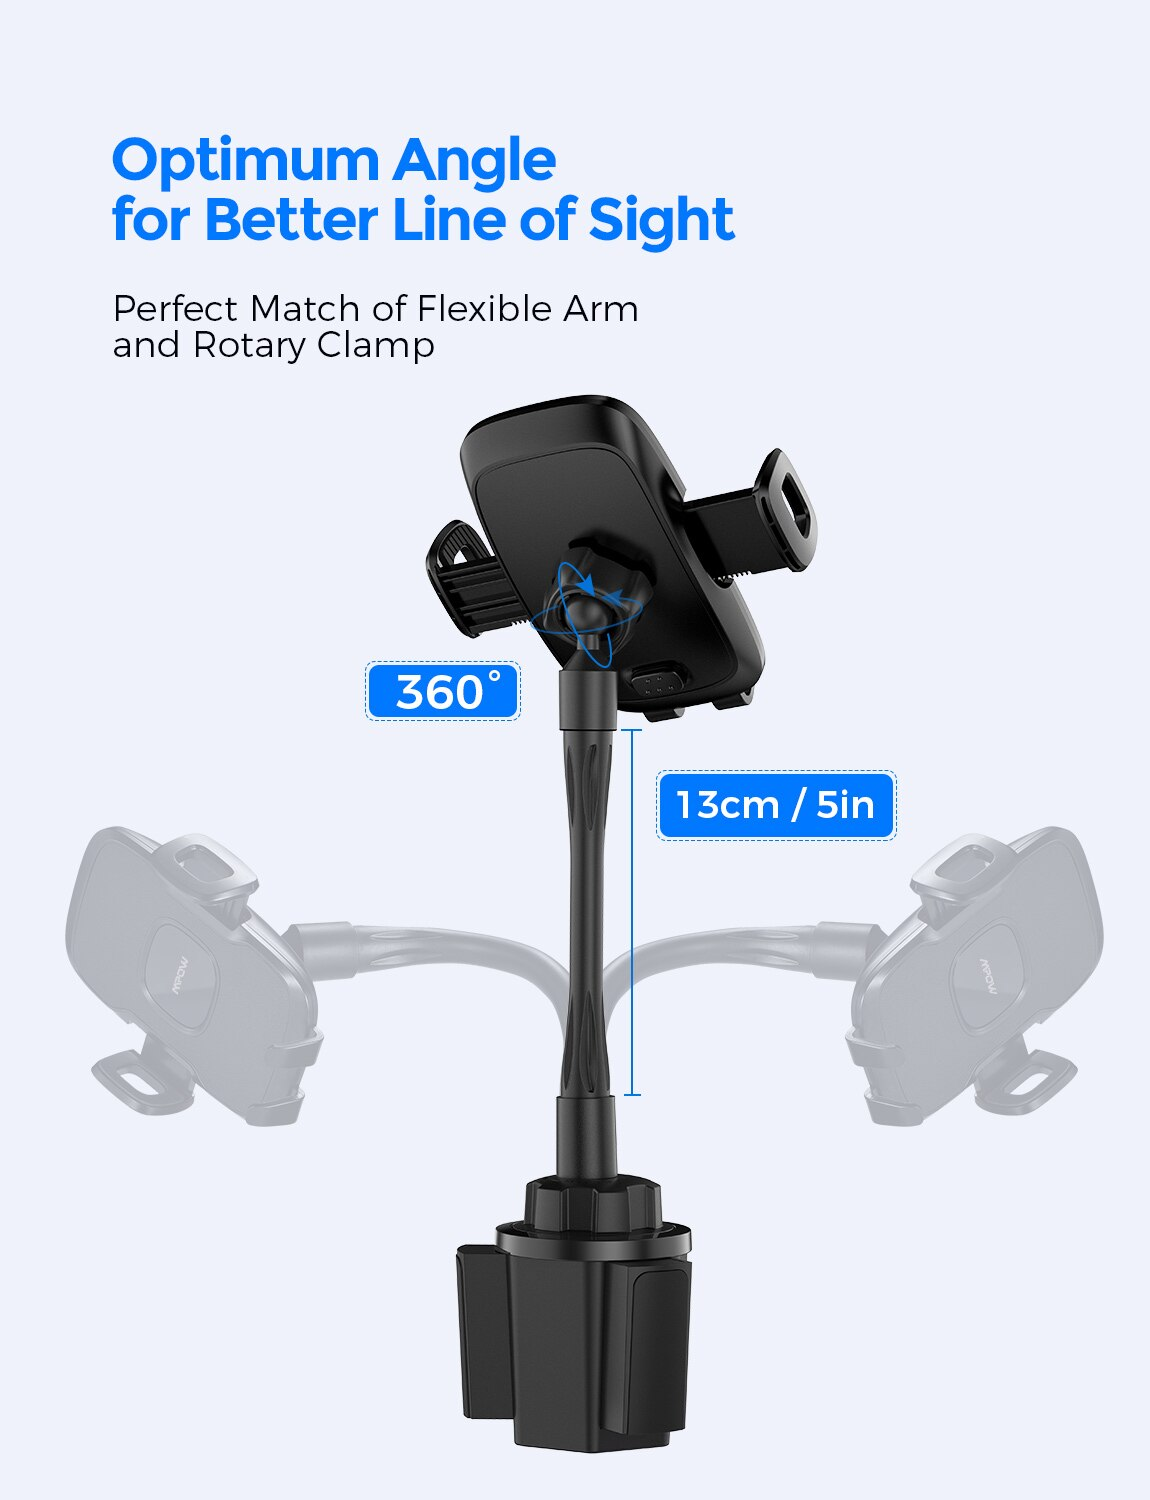 Hdb5870c92e894a3686e57226217061fdc - Mpow CA136 Car Phone Holder 360 Degree Flexible Long Arm and Adjustable Clamp Universal Phone Cradle Mount for For iPhone 12 XS